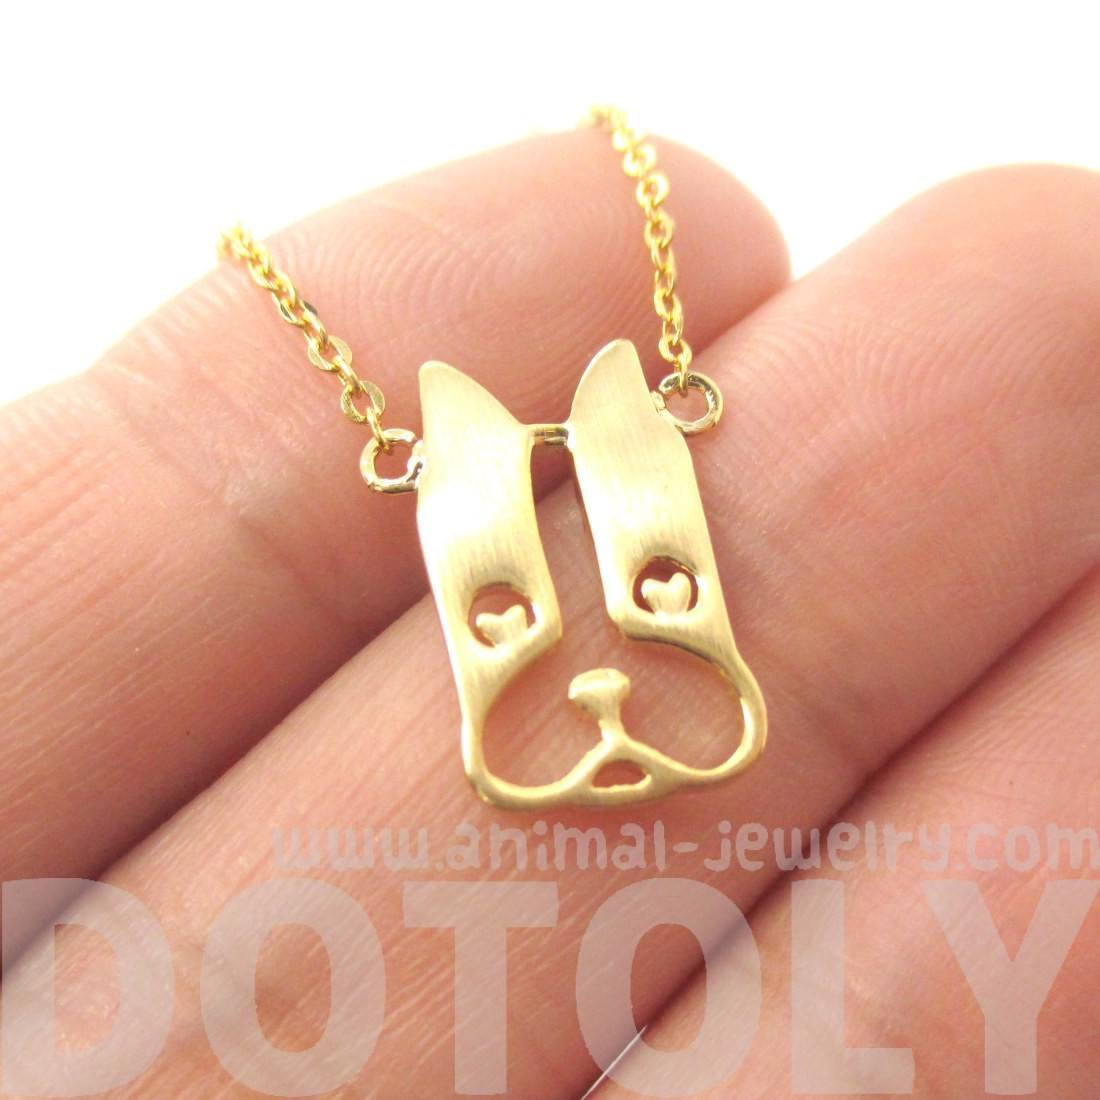 French Bulldog Shaped Cut Out Pendant Necklace in Gold